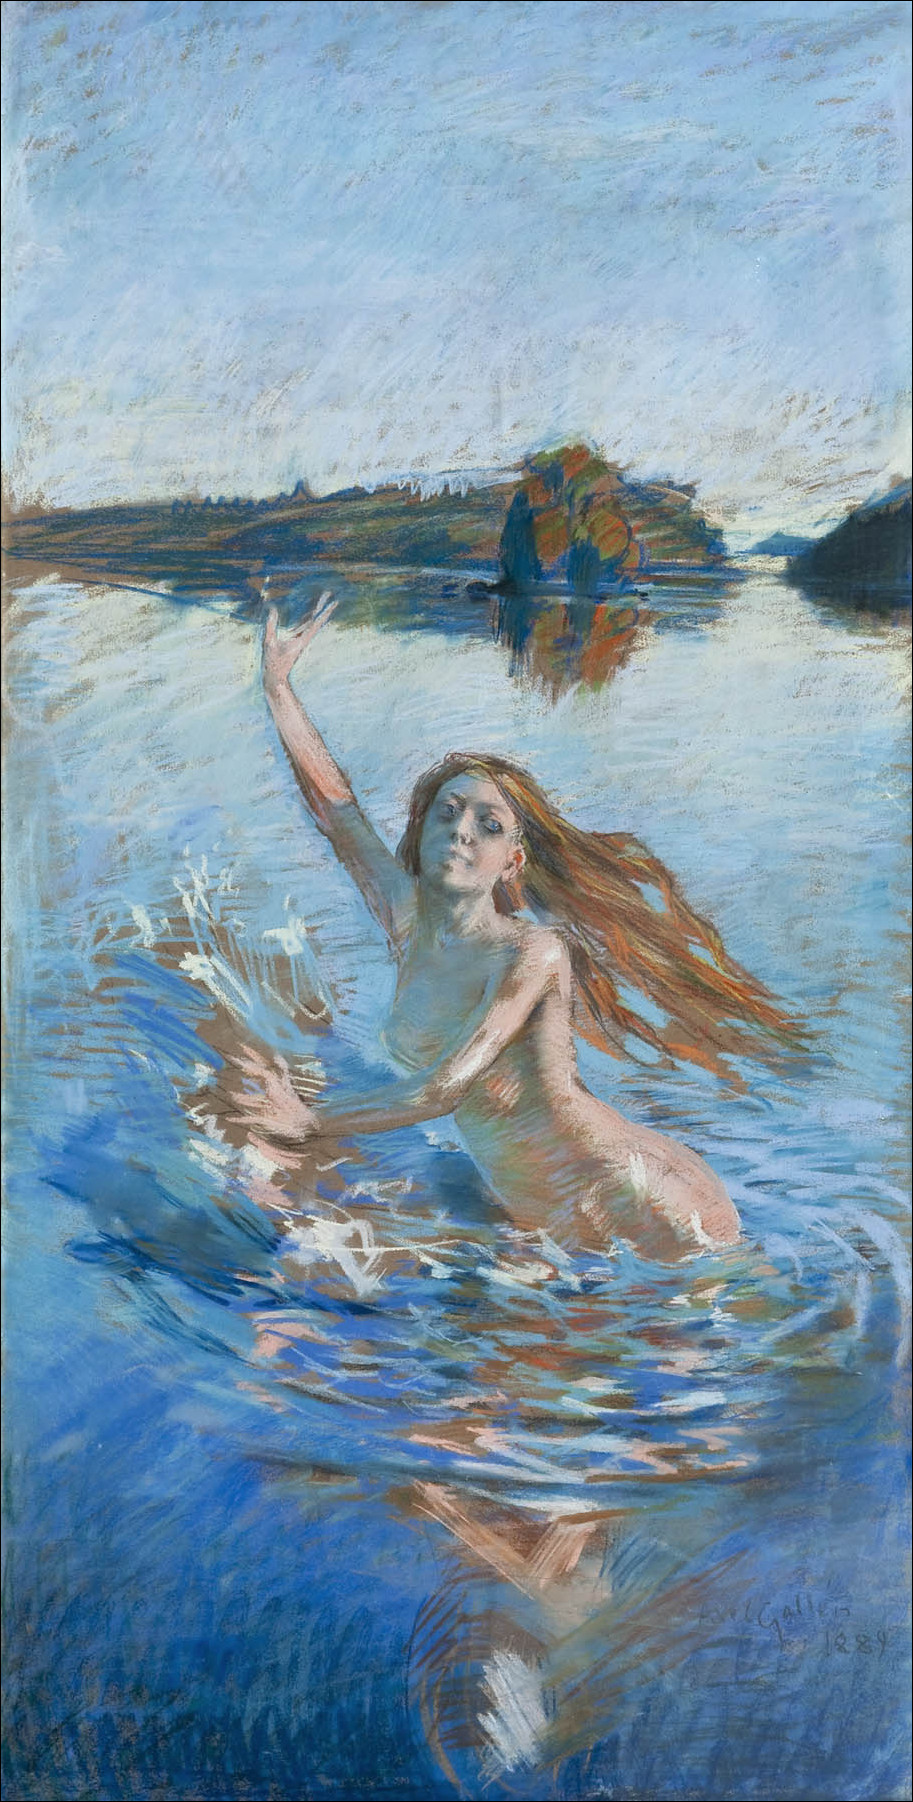 Akseli Gallen-Kallela, Aino (study) (1889), pastel, 157 x 78 cm, Private collection. Wikimedia Commons.